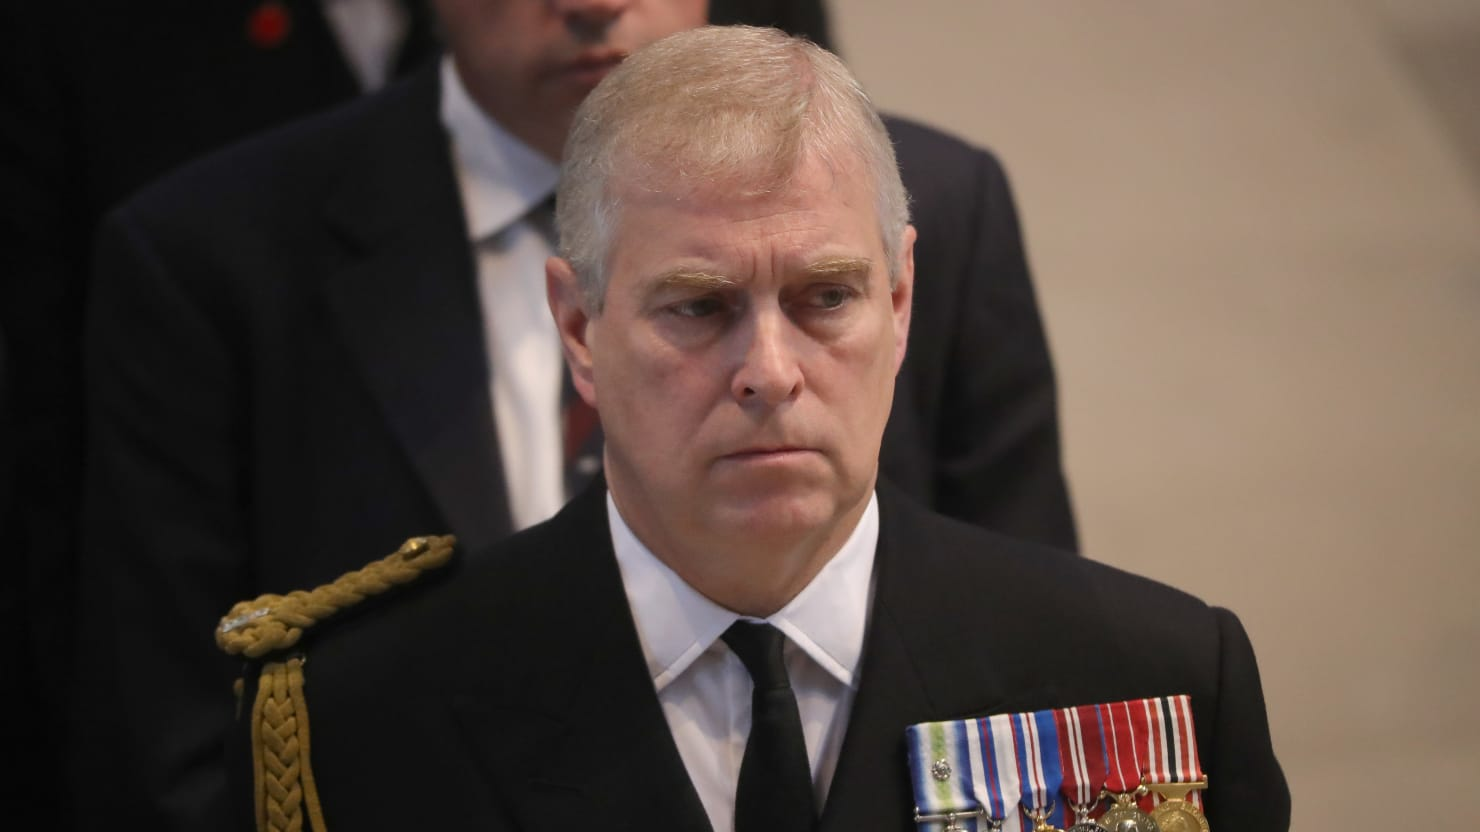 Prince Andrew's Siblings Were No-Shows at His 60th Birthday Party: Report